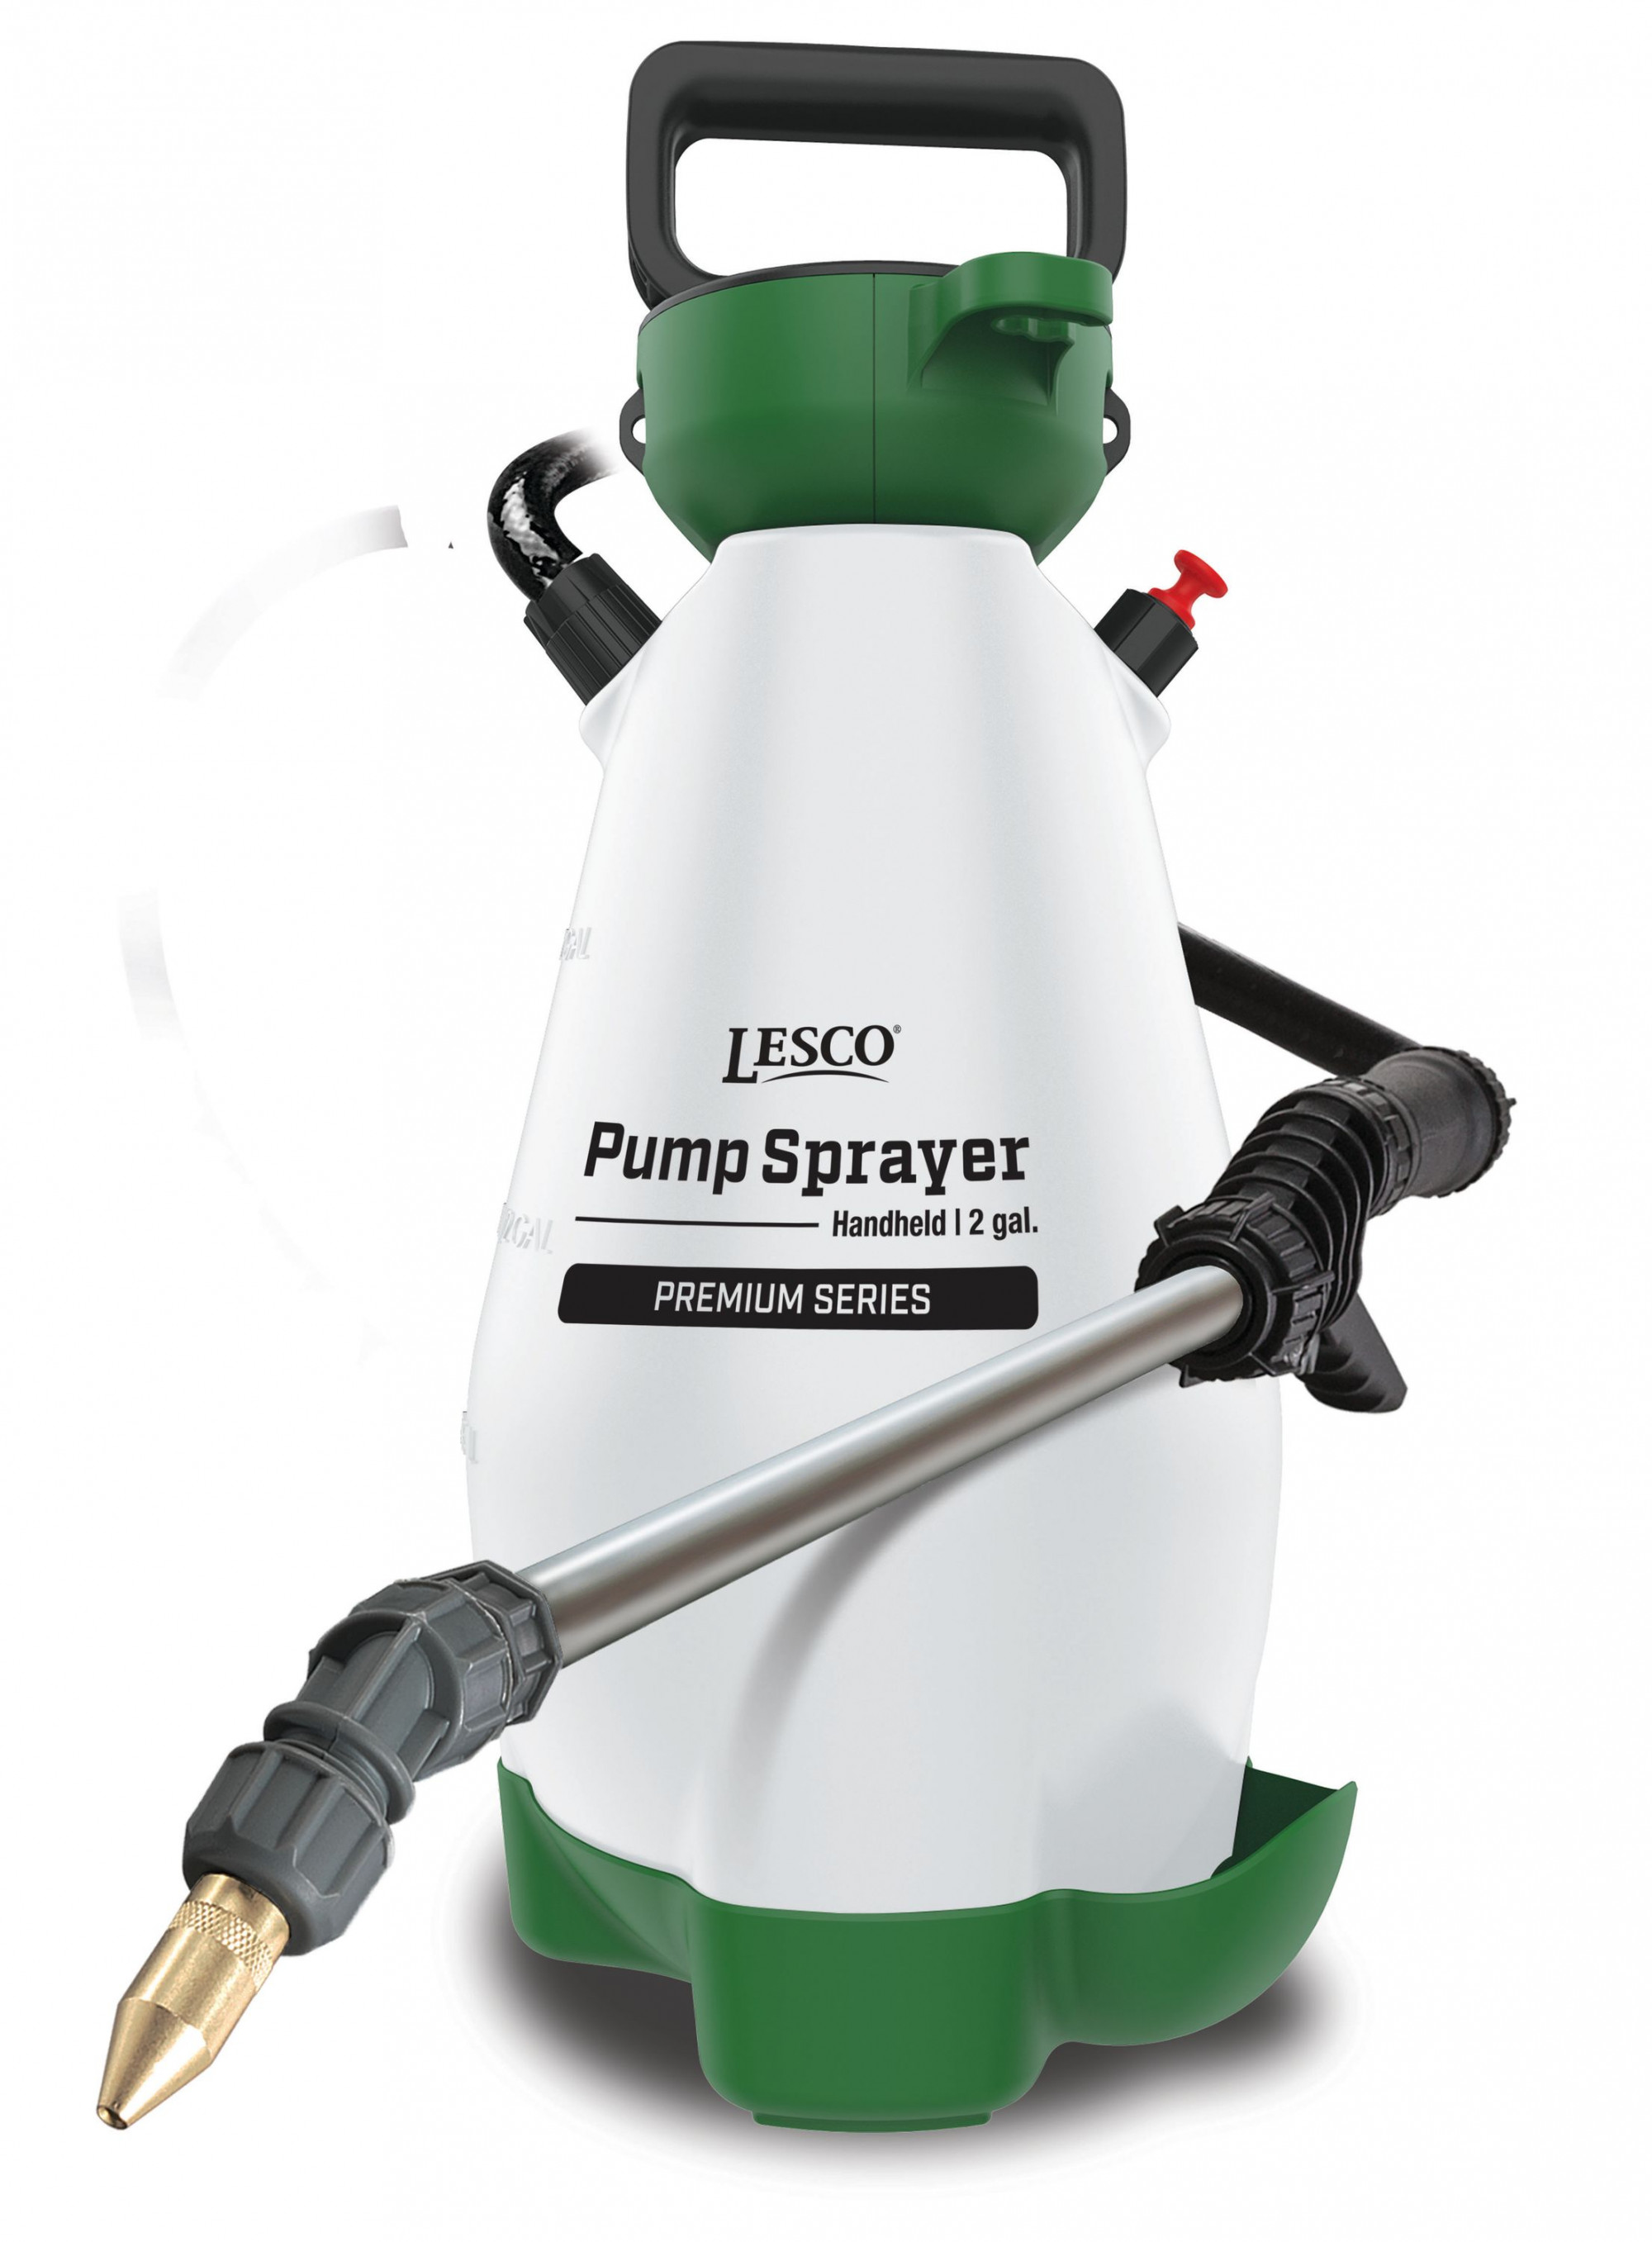 LESCO® Pump Sprayer Handheld, 2 Gal, Premium Series, Model 190596